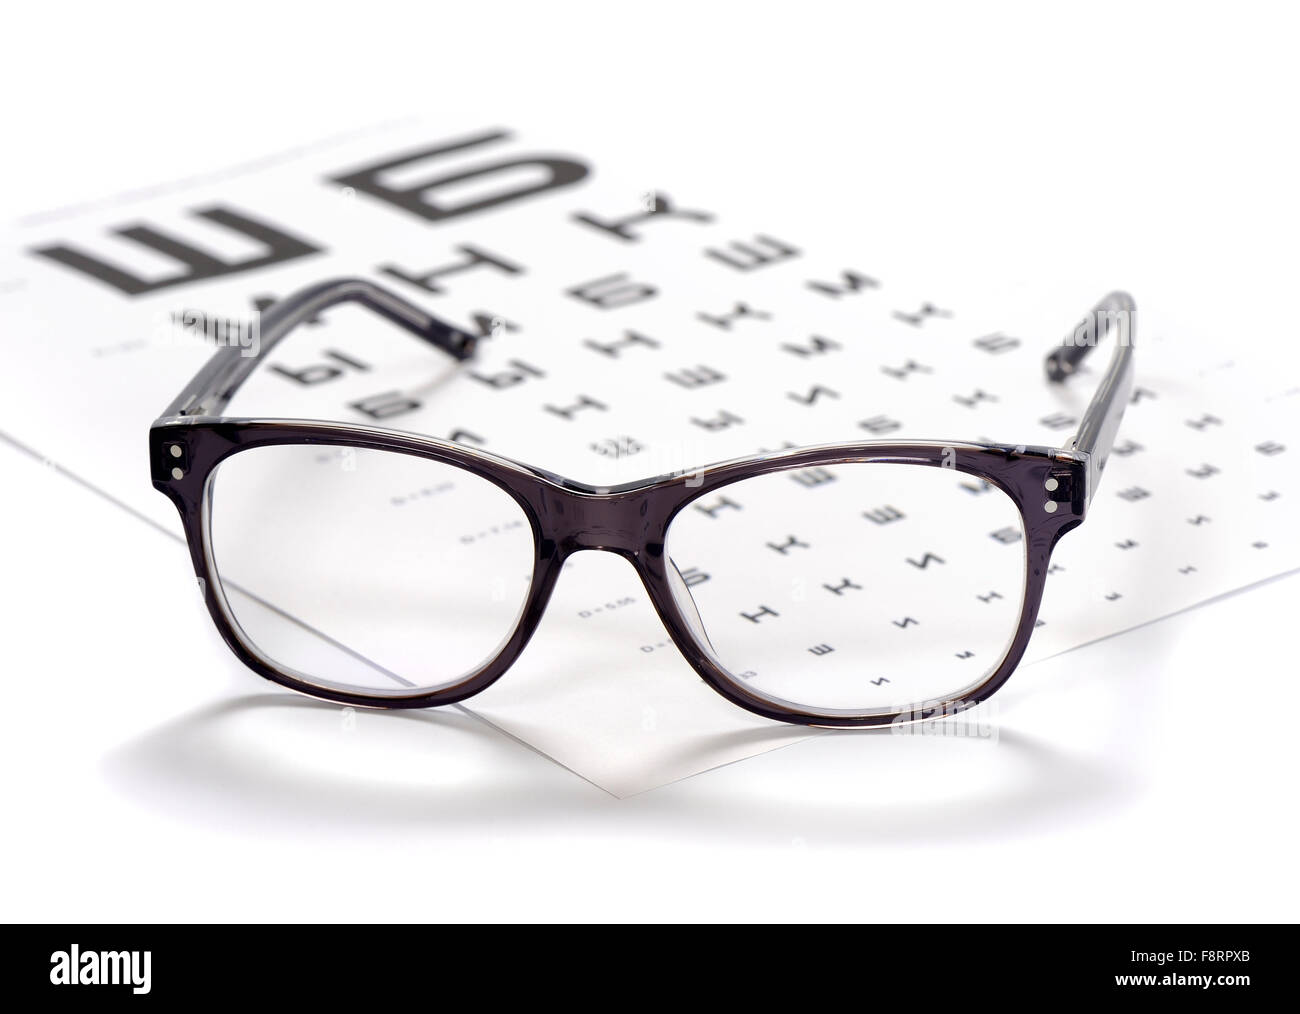 Reading eyeglasses and eye chart close up on a light background reading eyeglasses and eye chart close up on a light background nvjuhfo Image collections